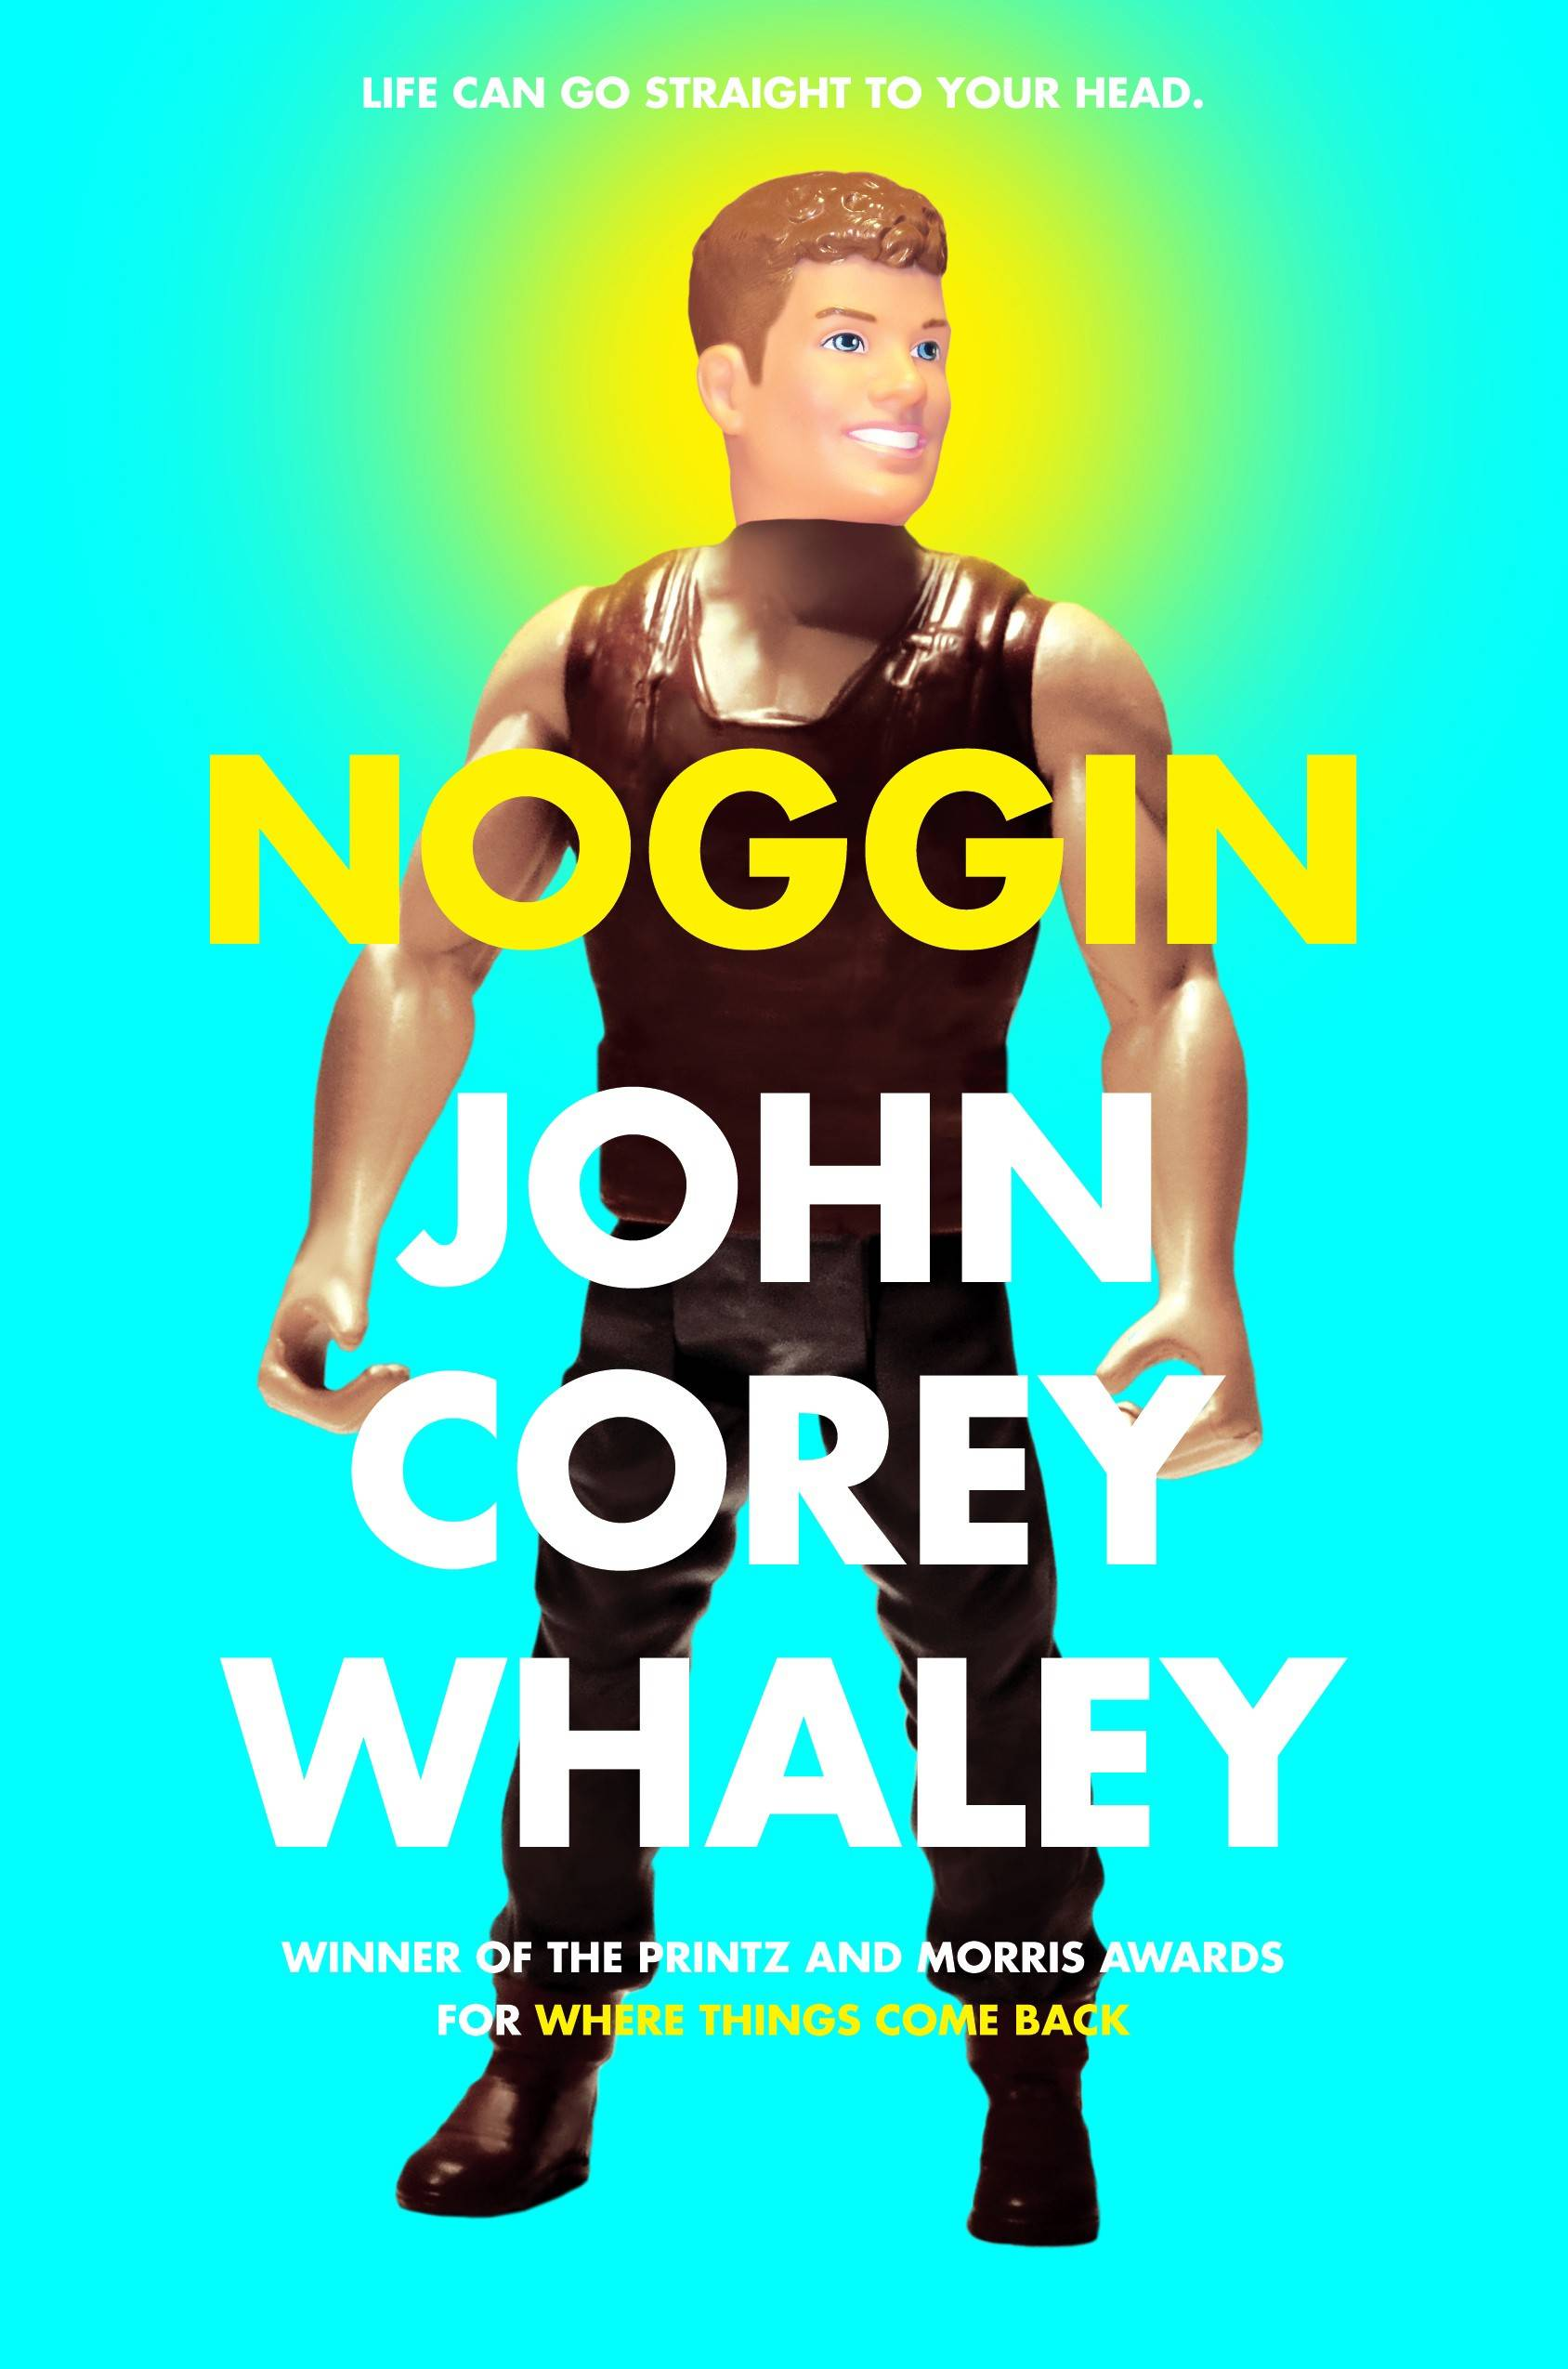 """Noggin"" by John Corey Whaley (2014, Atheneum Books for Young Readers), $17.99, 352 pages."